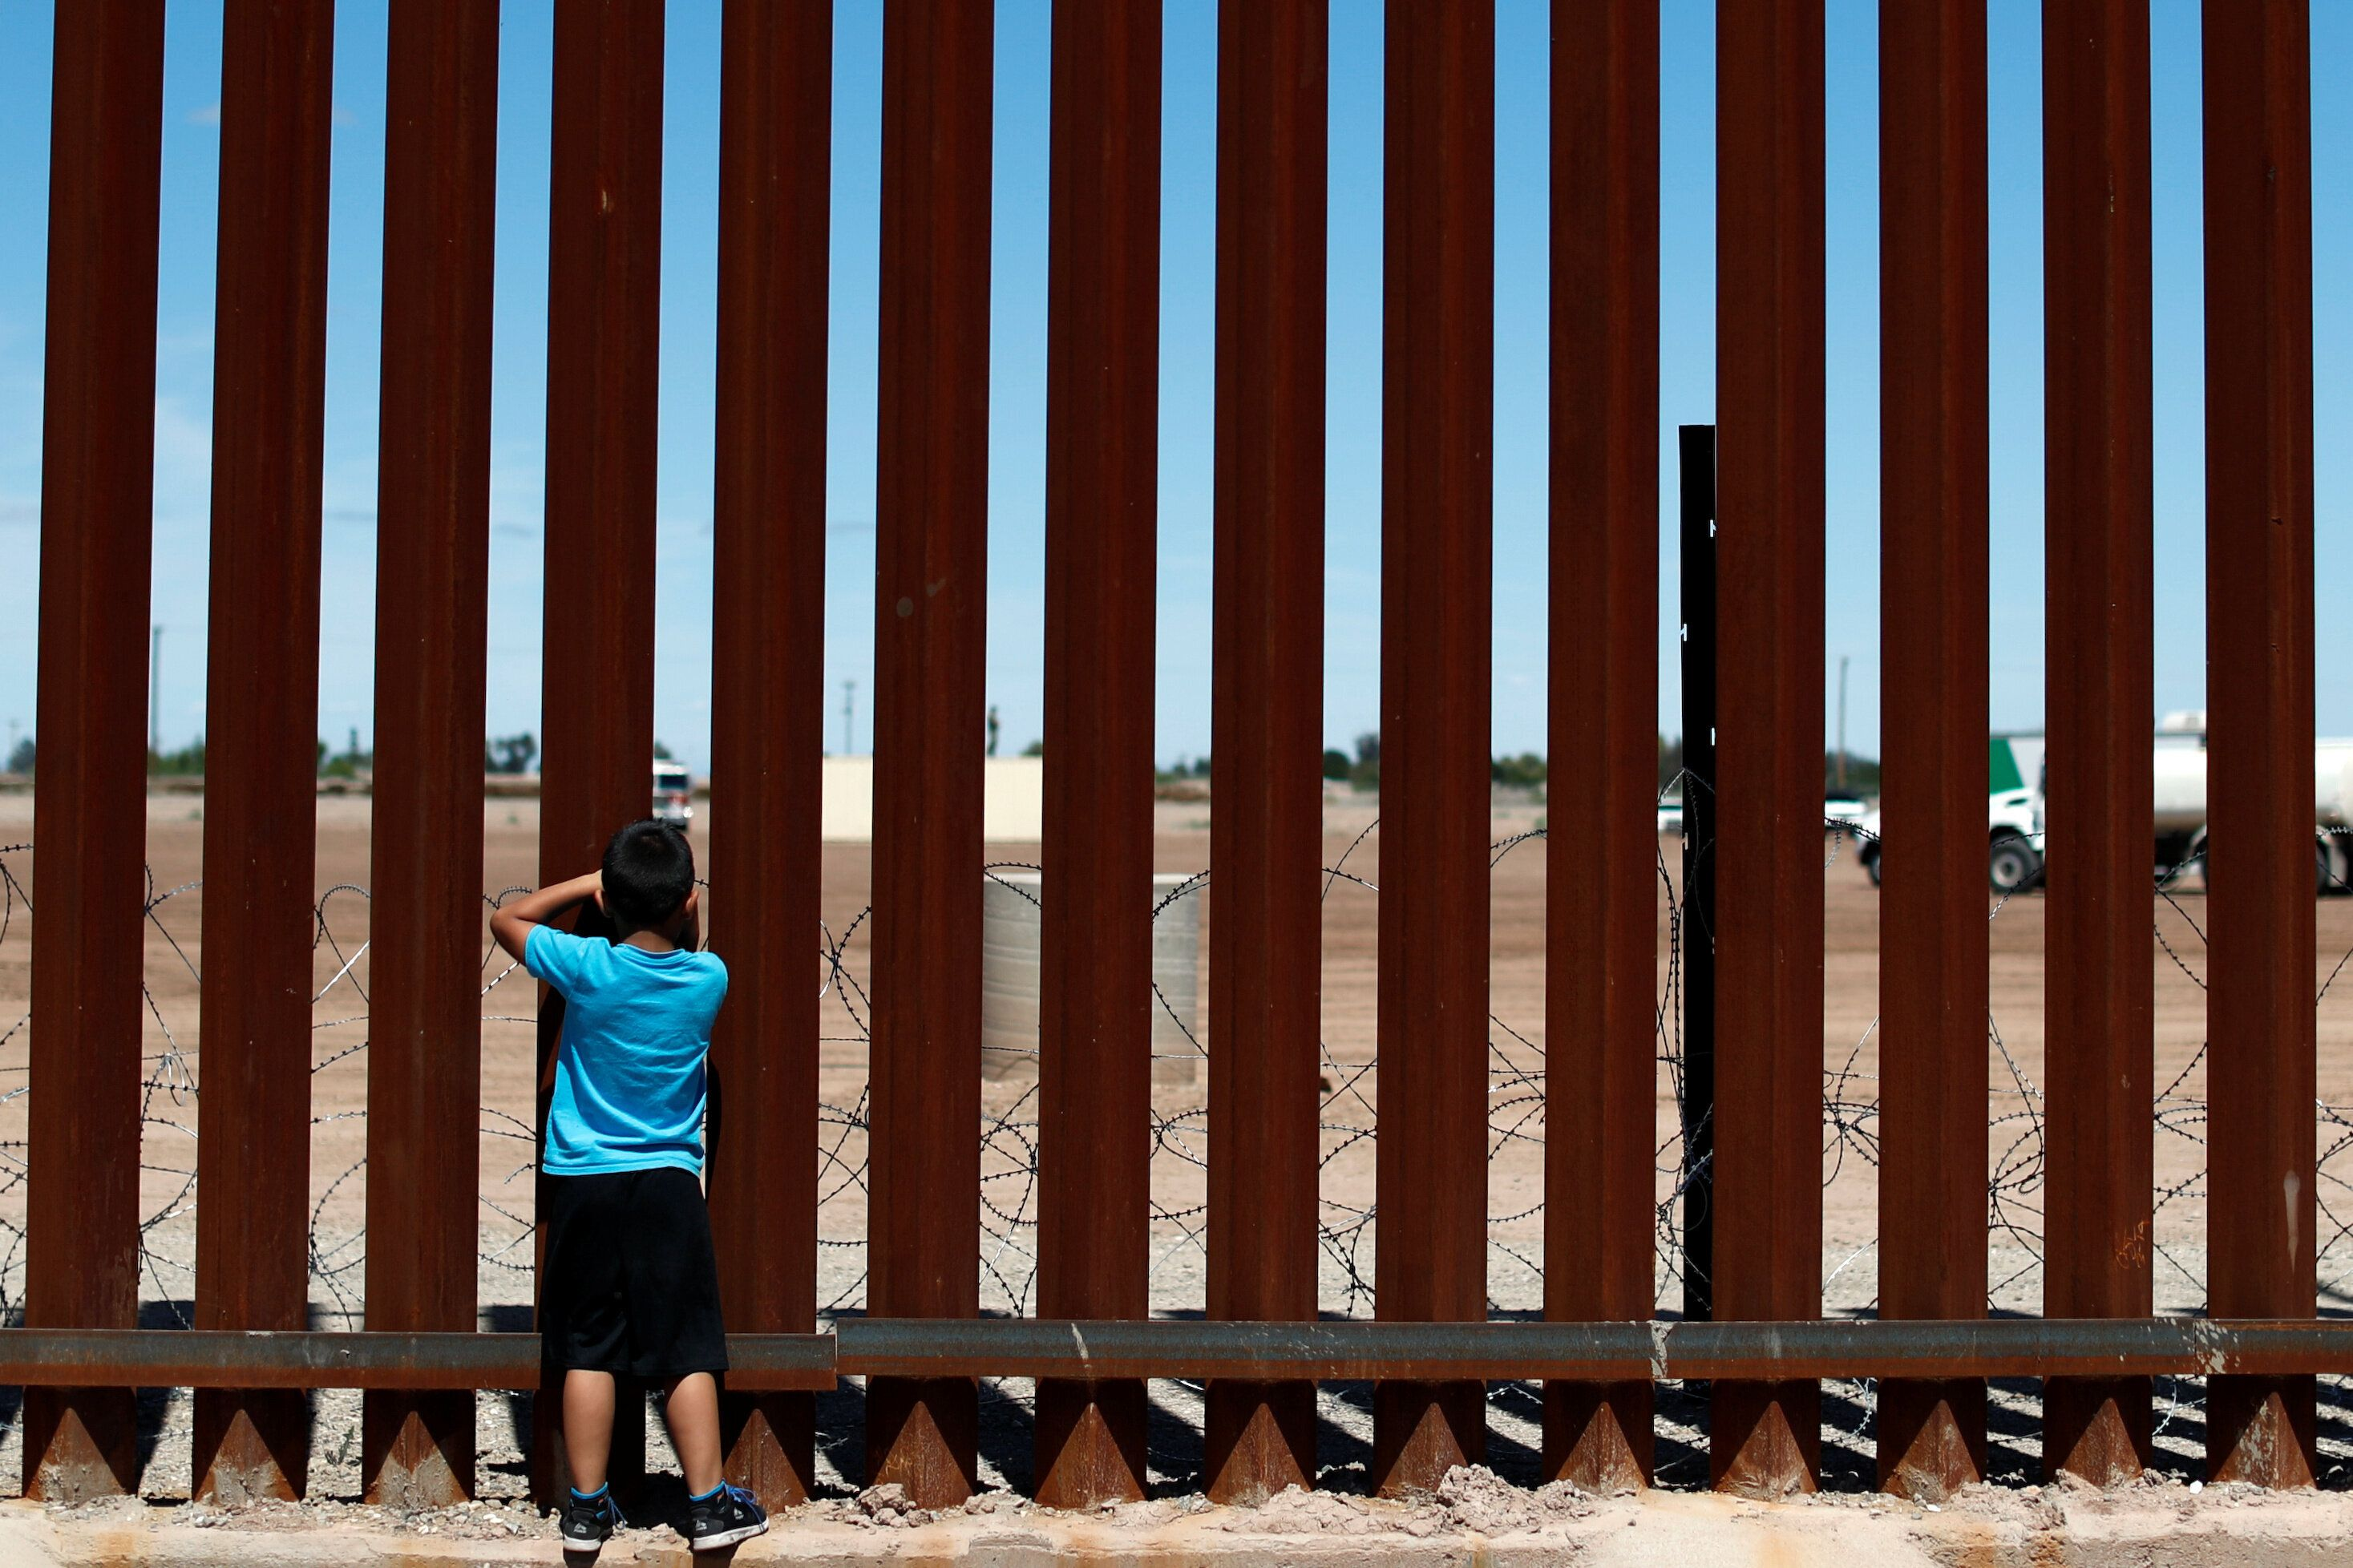 A child looks through the border wall during the visit of U.S. President Donald Trump to Calexico, California, as seen in Mexicali, Mexico April 5, 2019. REUTERS/Carlos Jasso